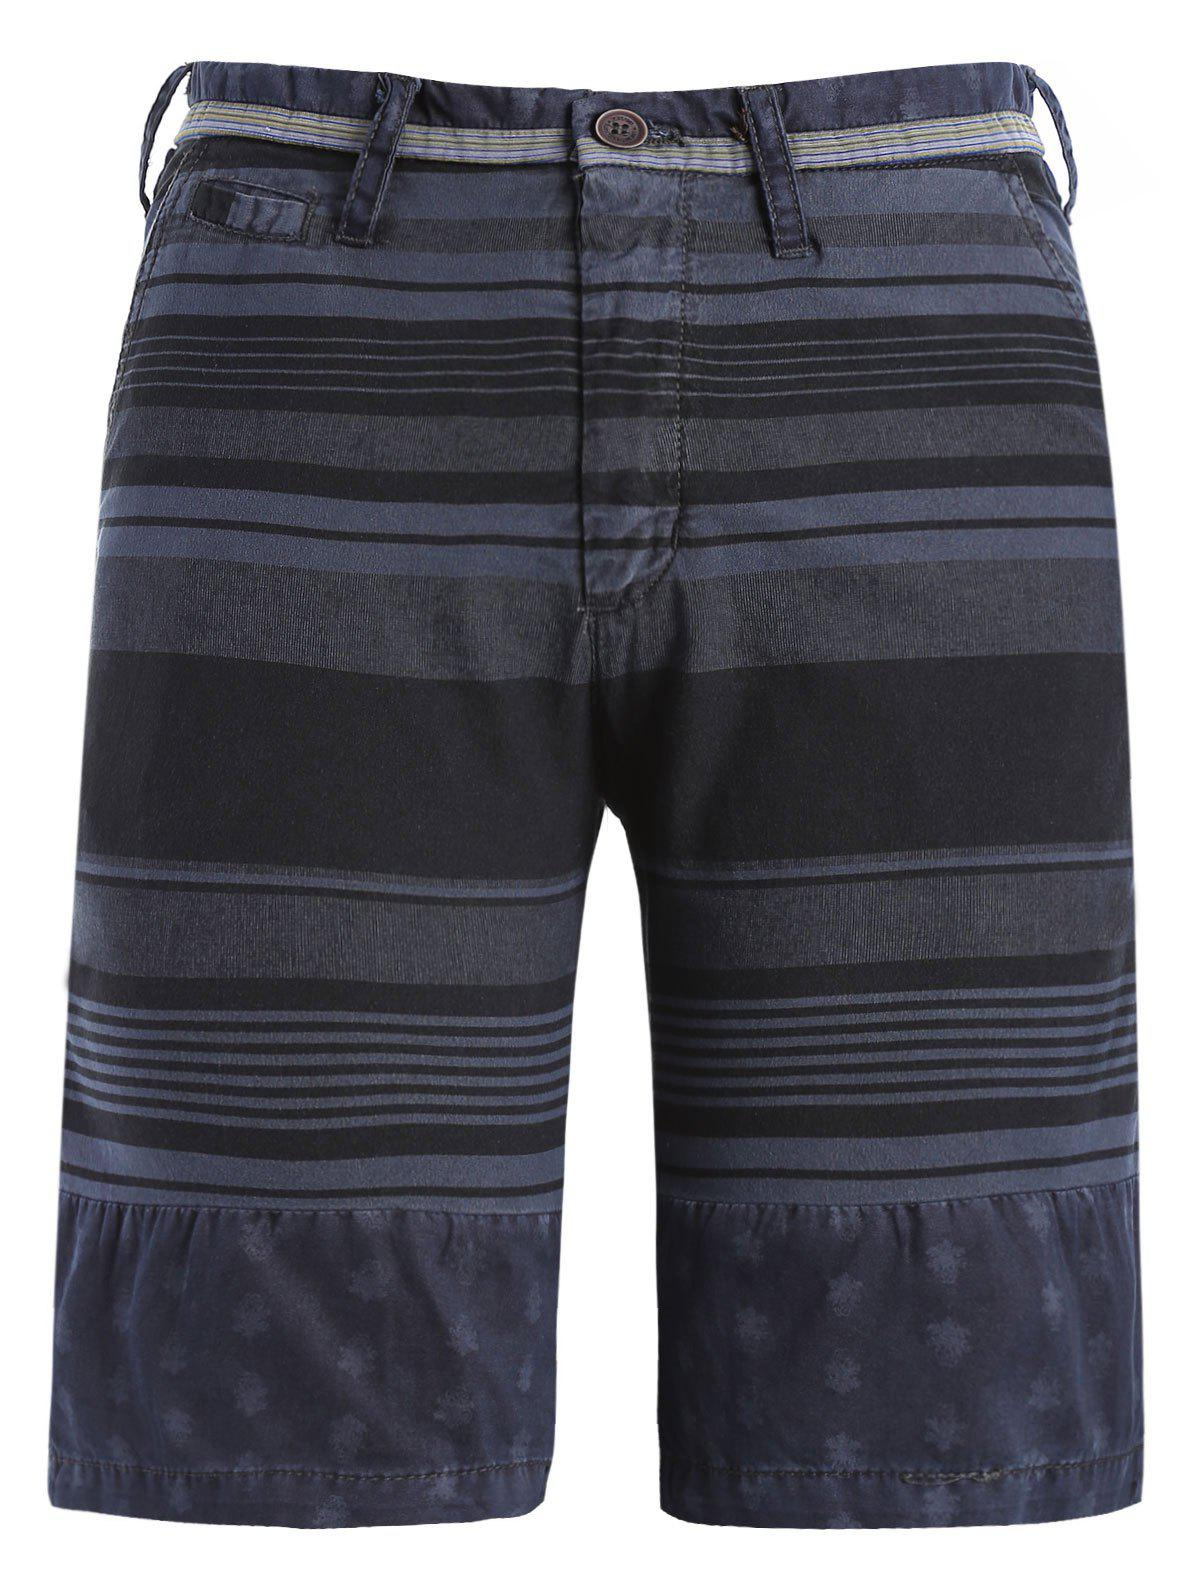 Stripe and Geometric Print Spliced Zipper Fly Straight Leg Men's Shorts - CADETBLUE 3XL